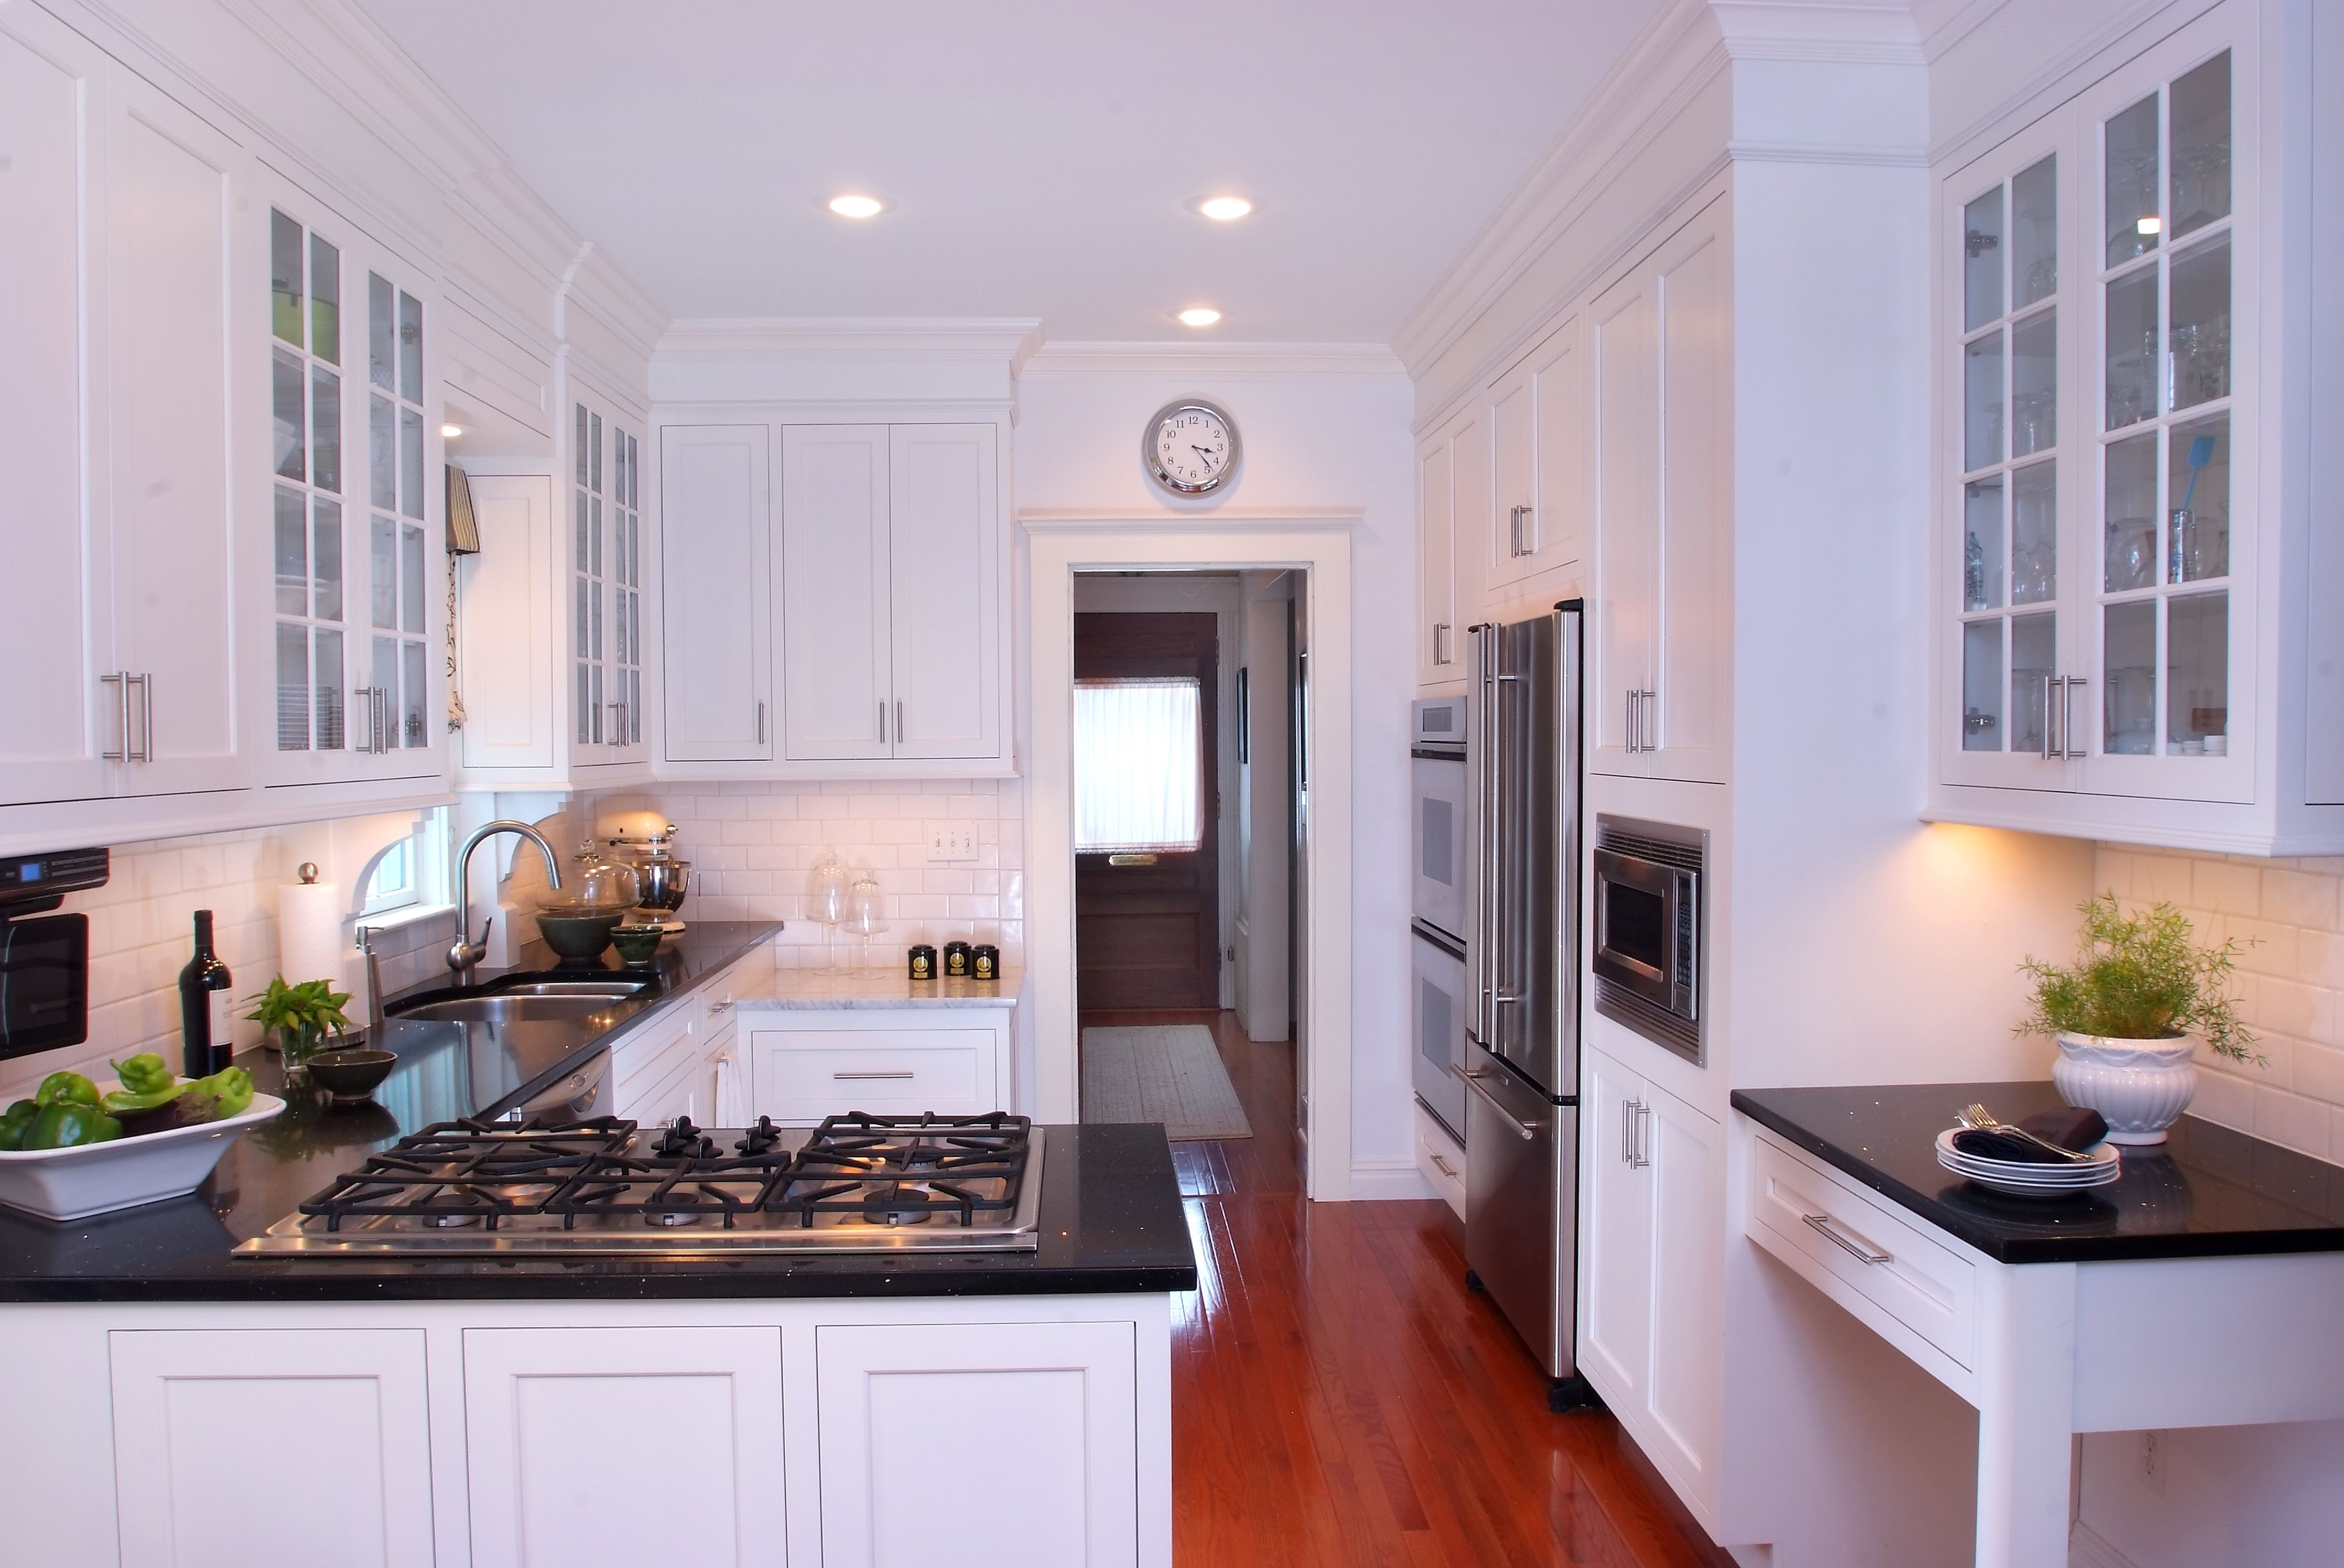 Classic and timeless kitchen with inset cabinetry